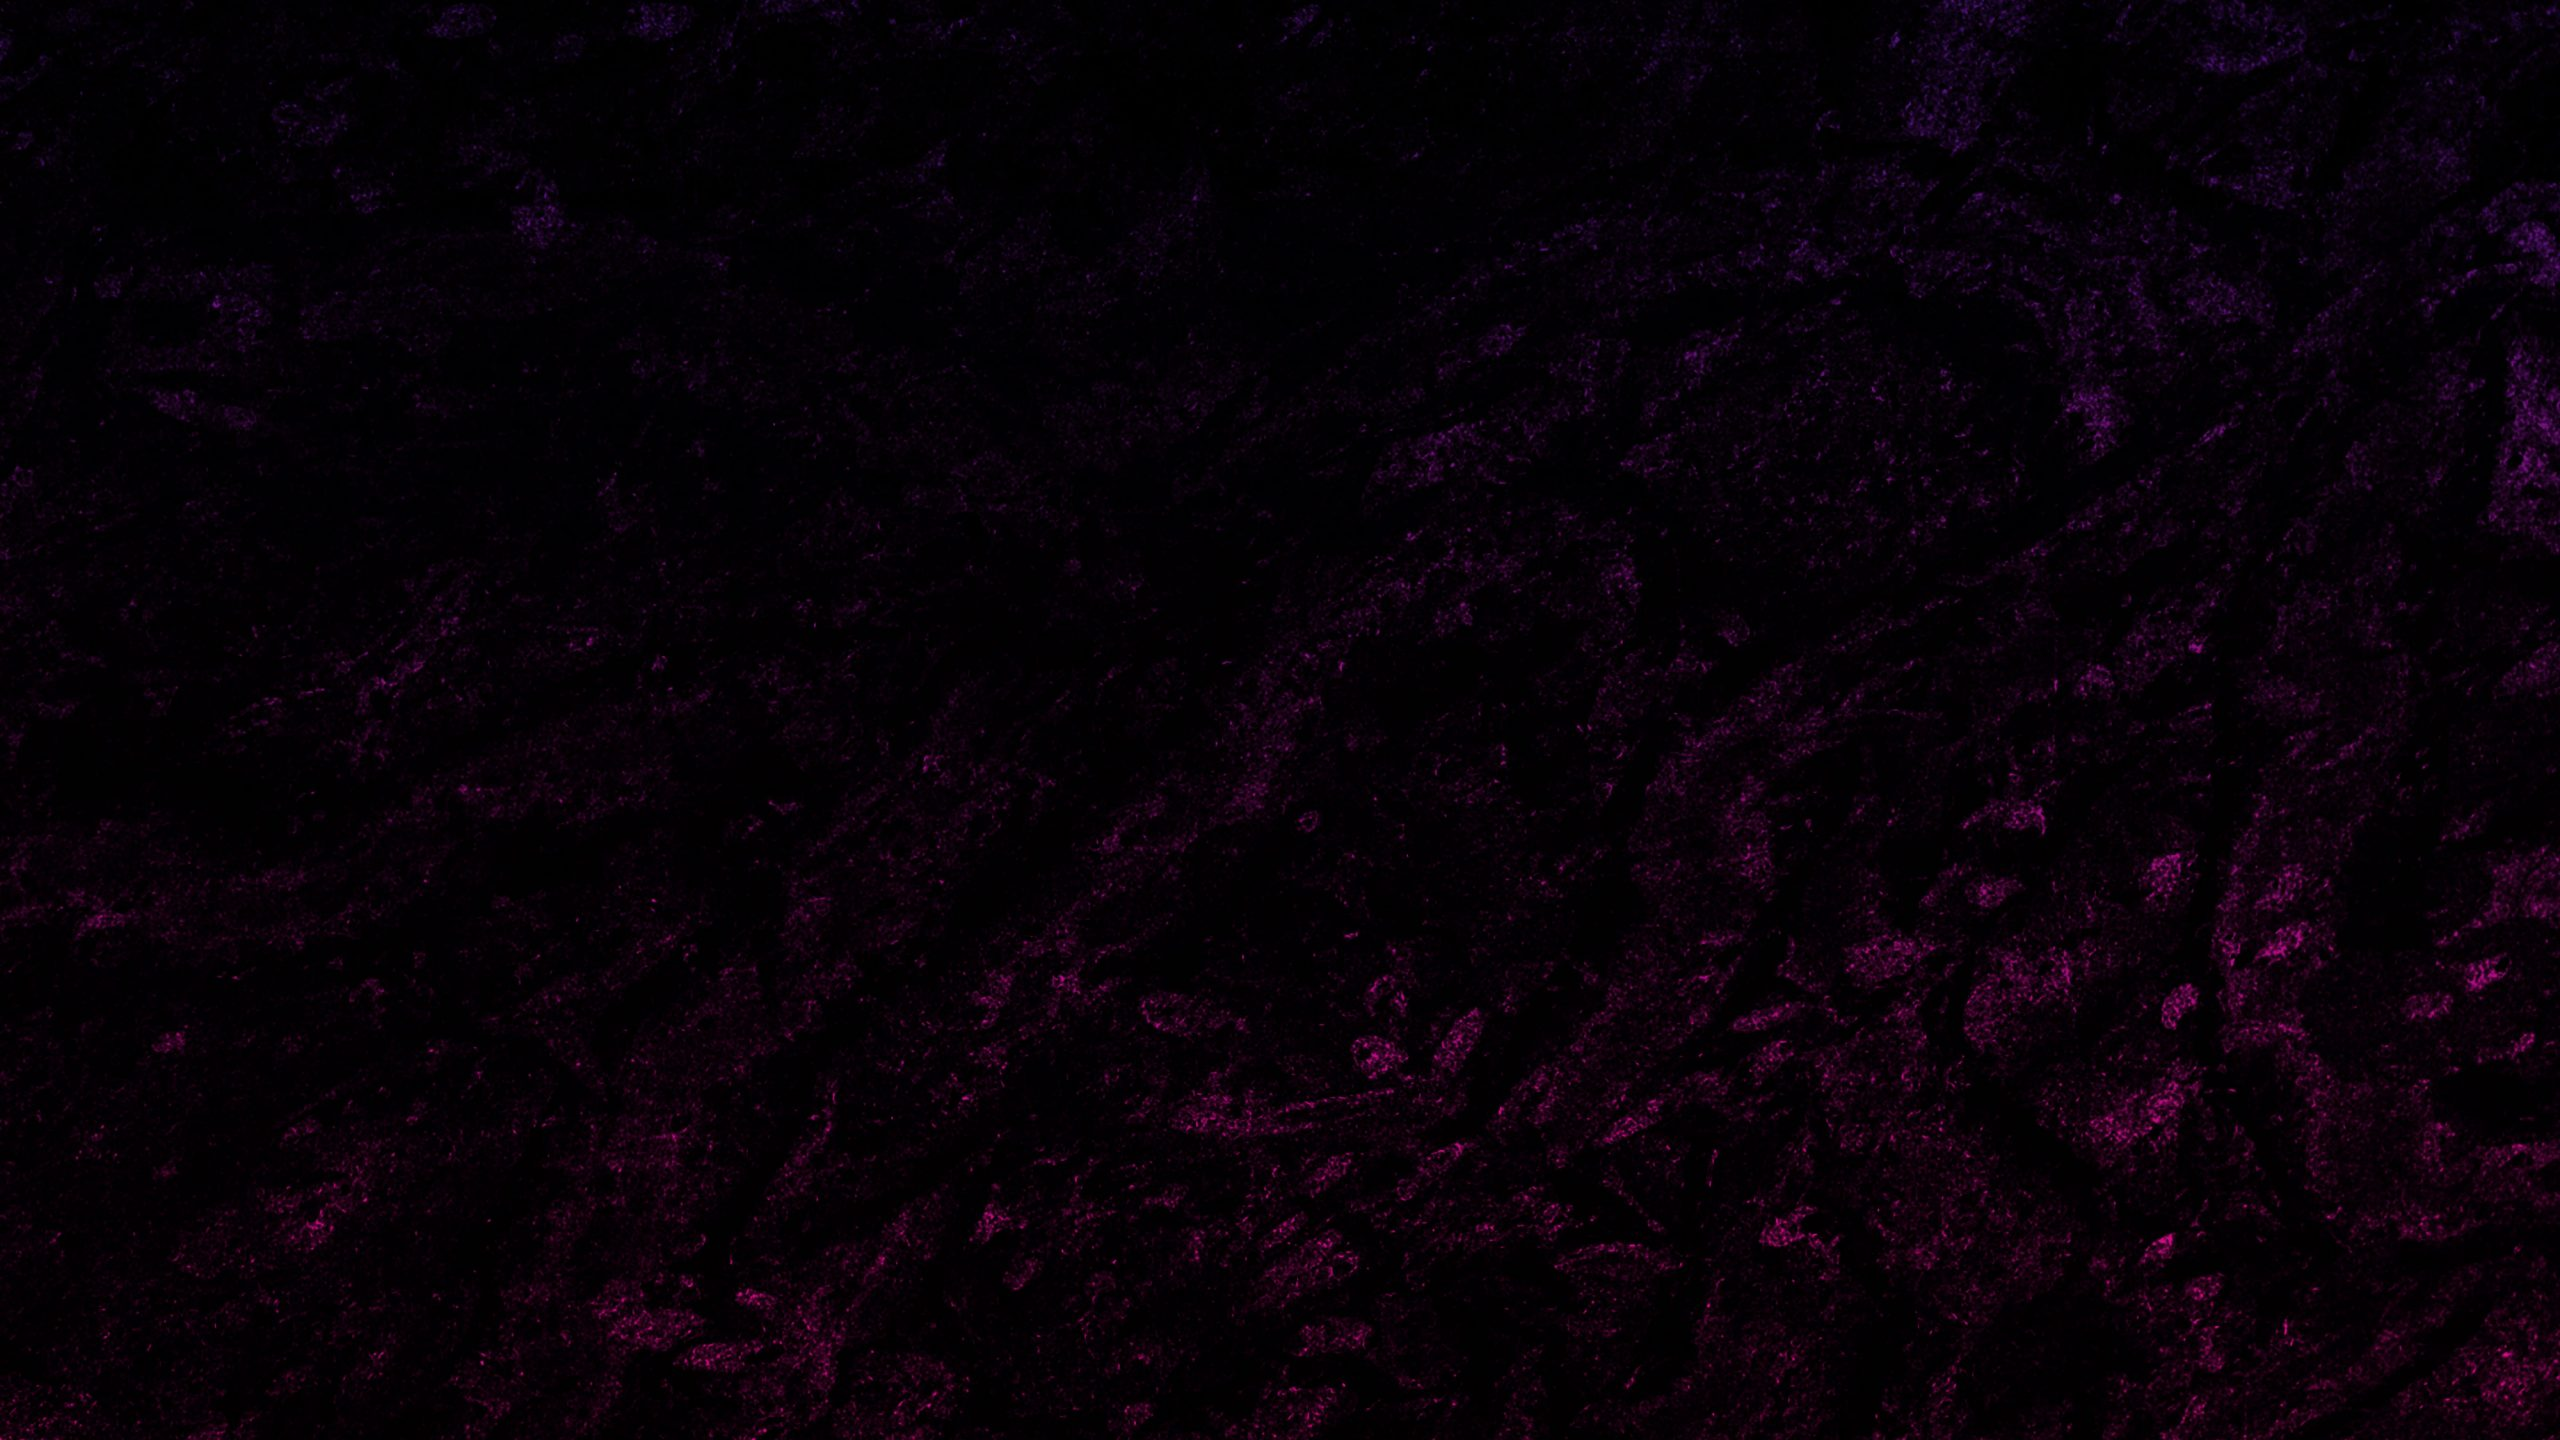 purple-black-texture-background